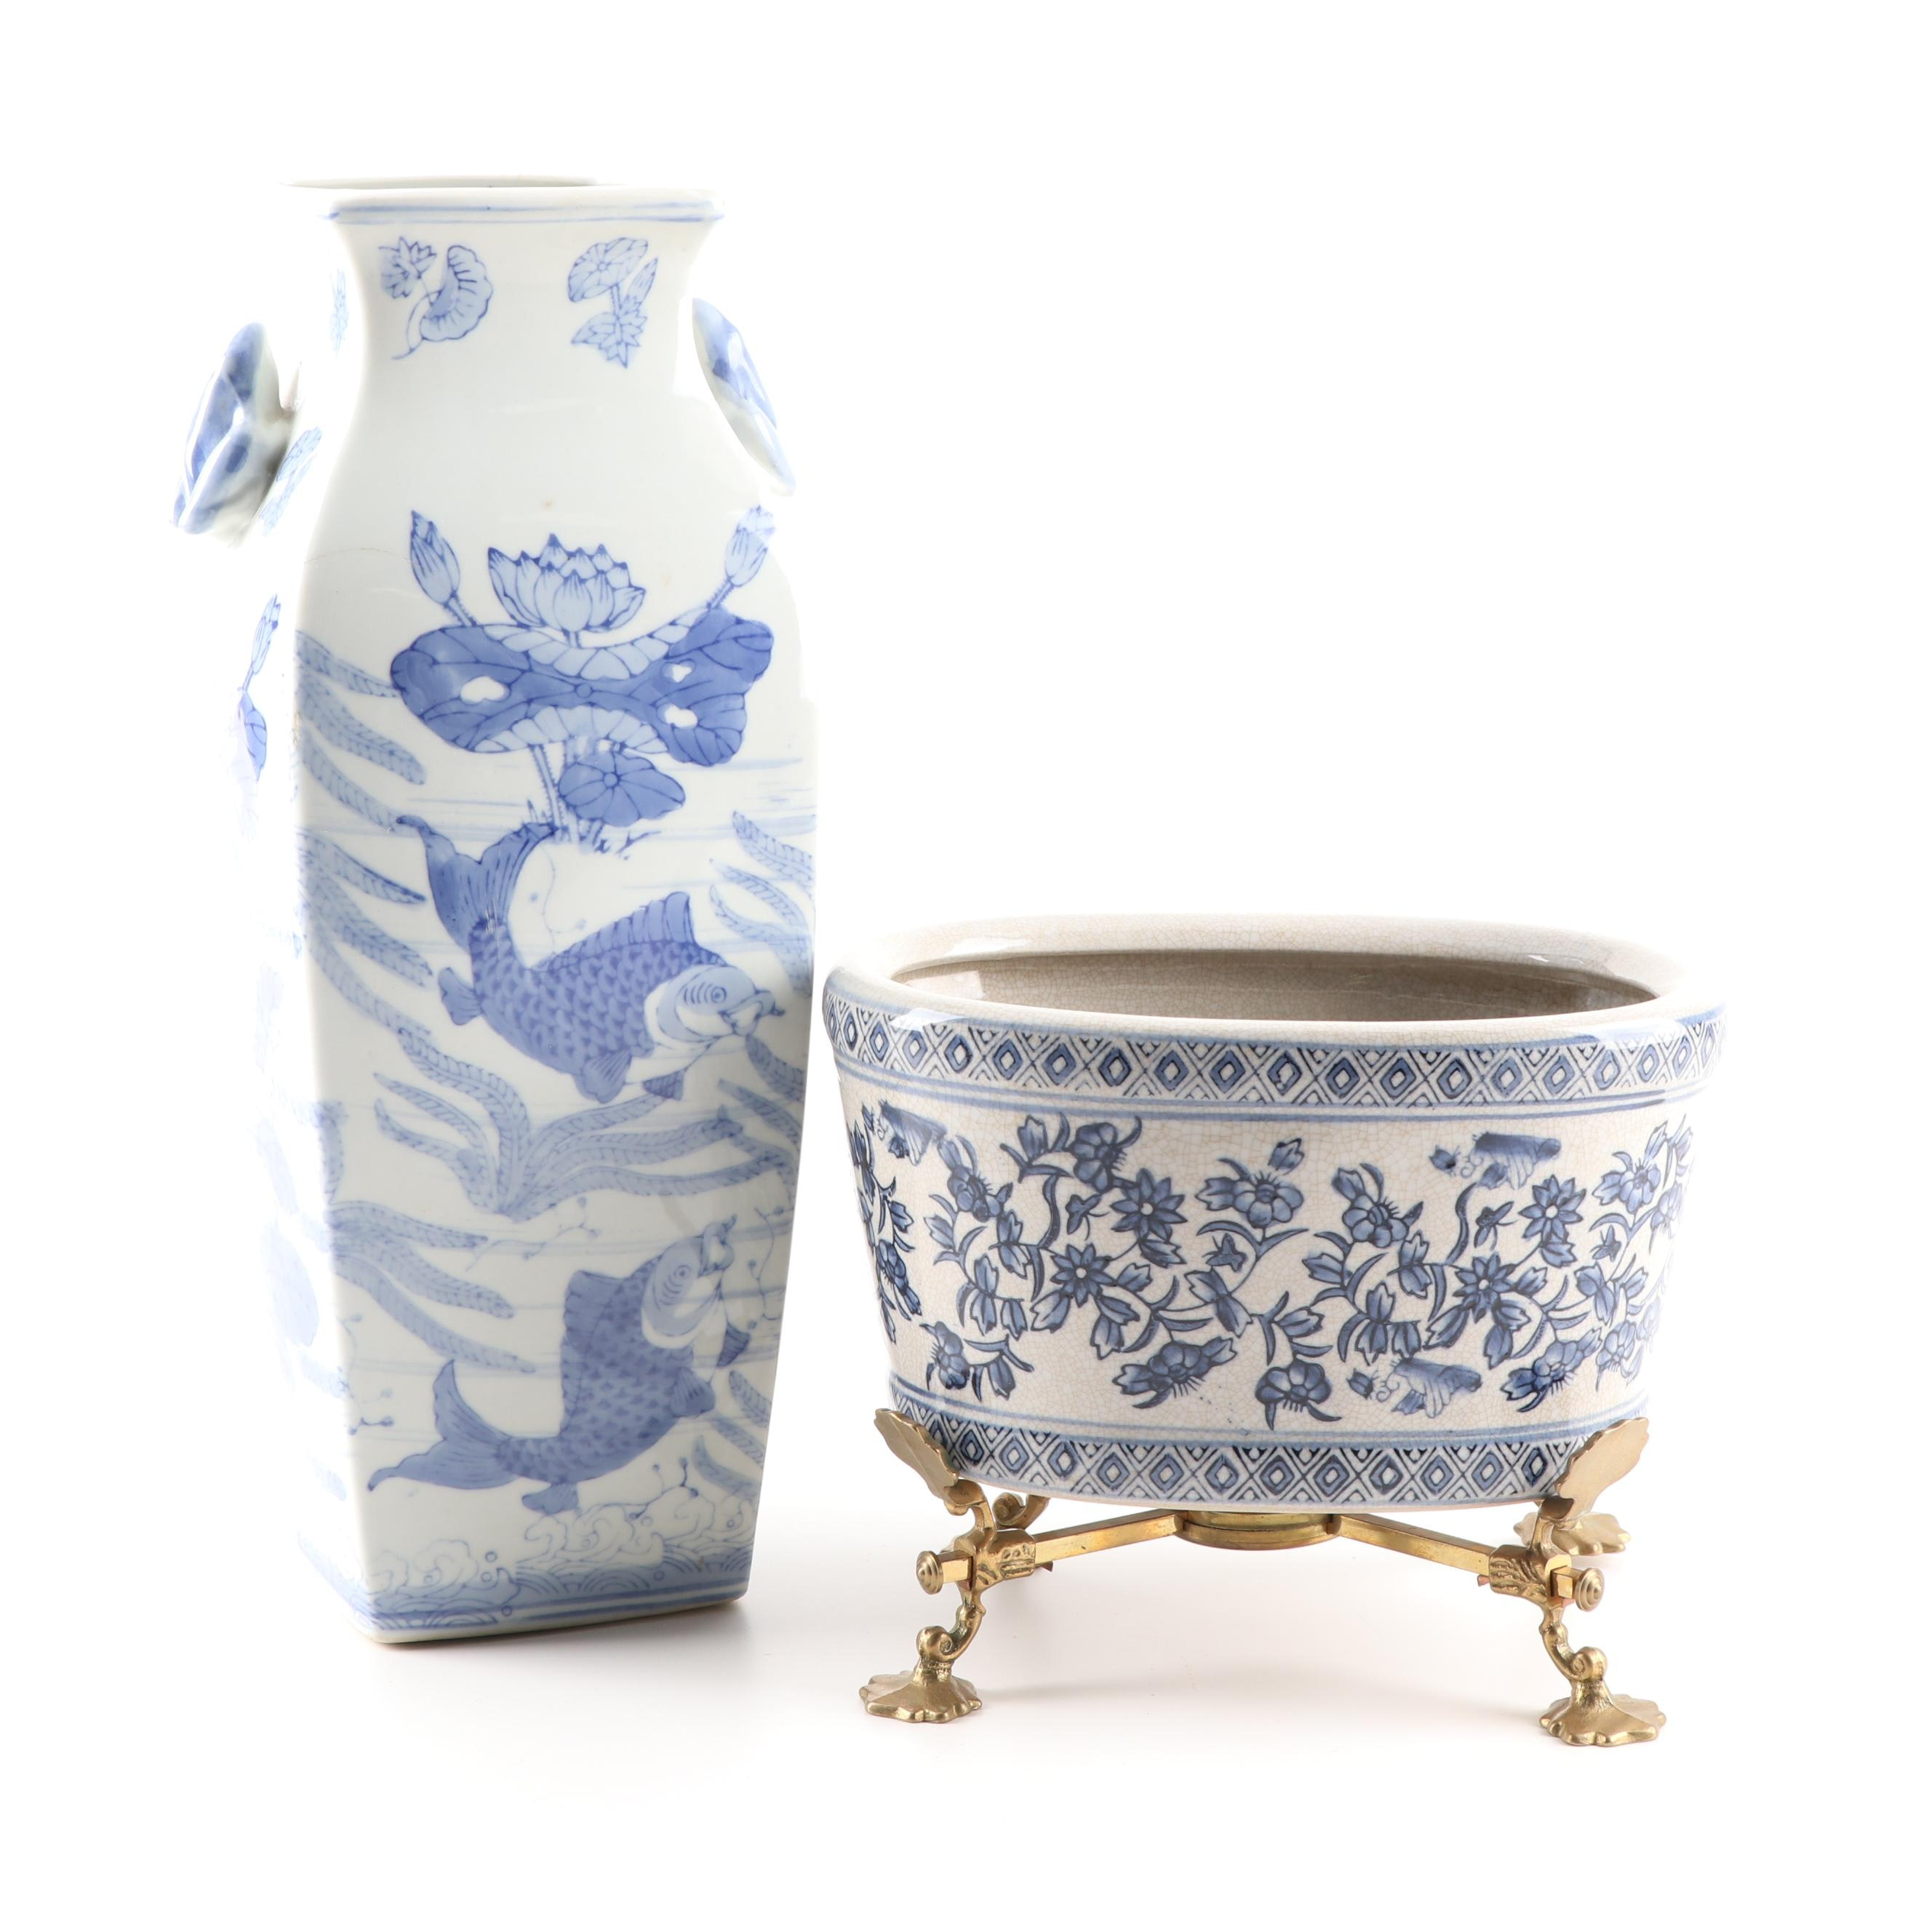 Chinese Porcelain Vase and Footbath with Metal Stand